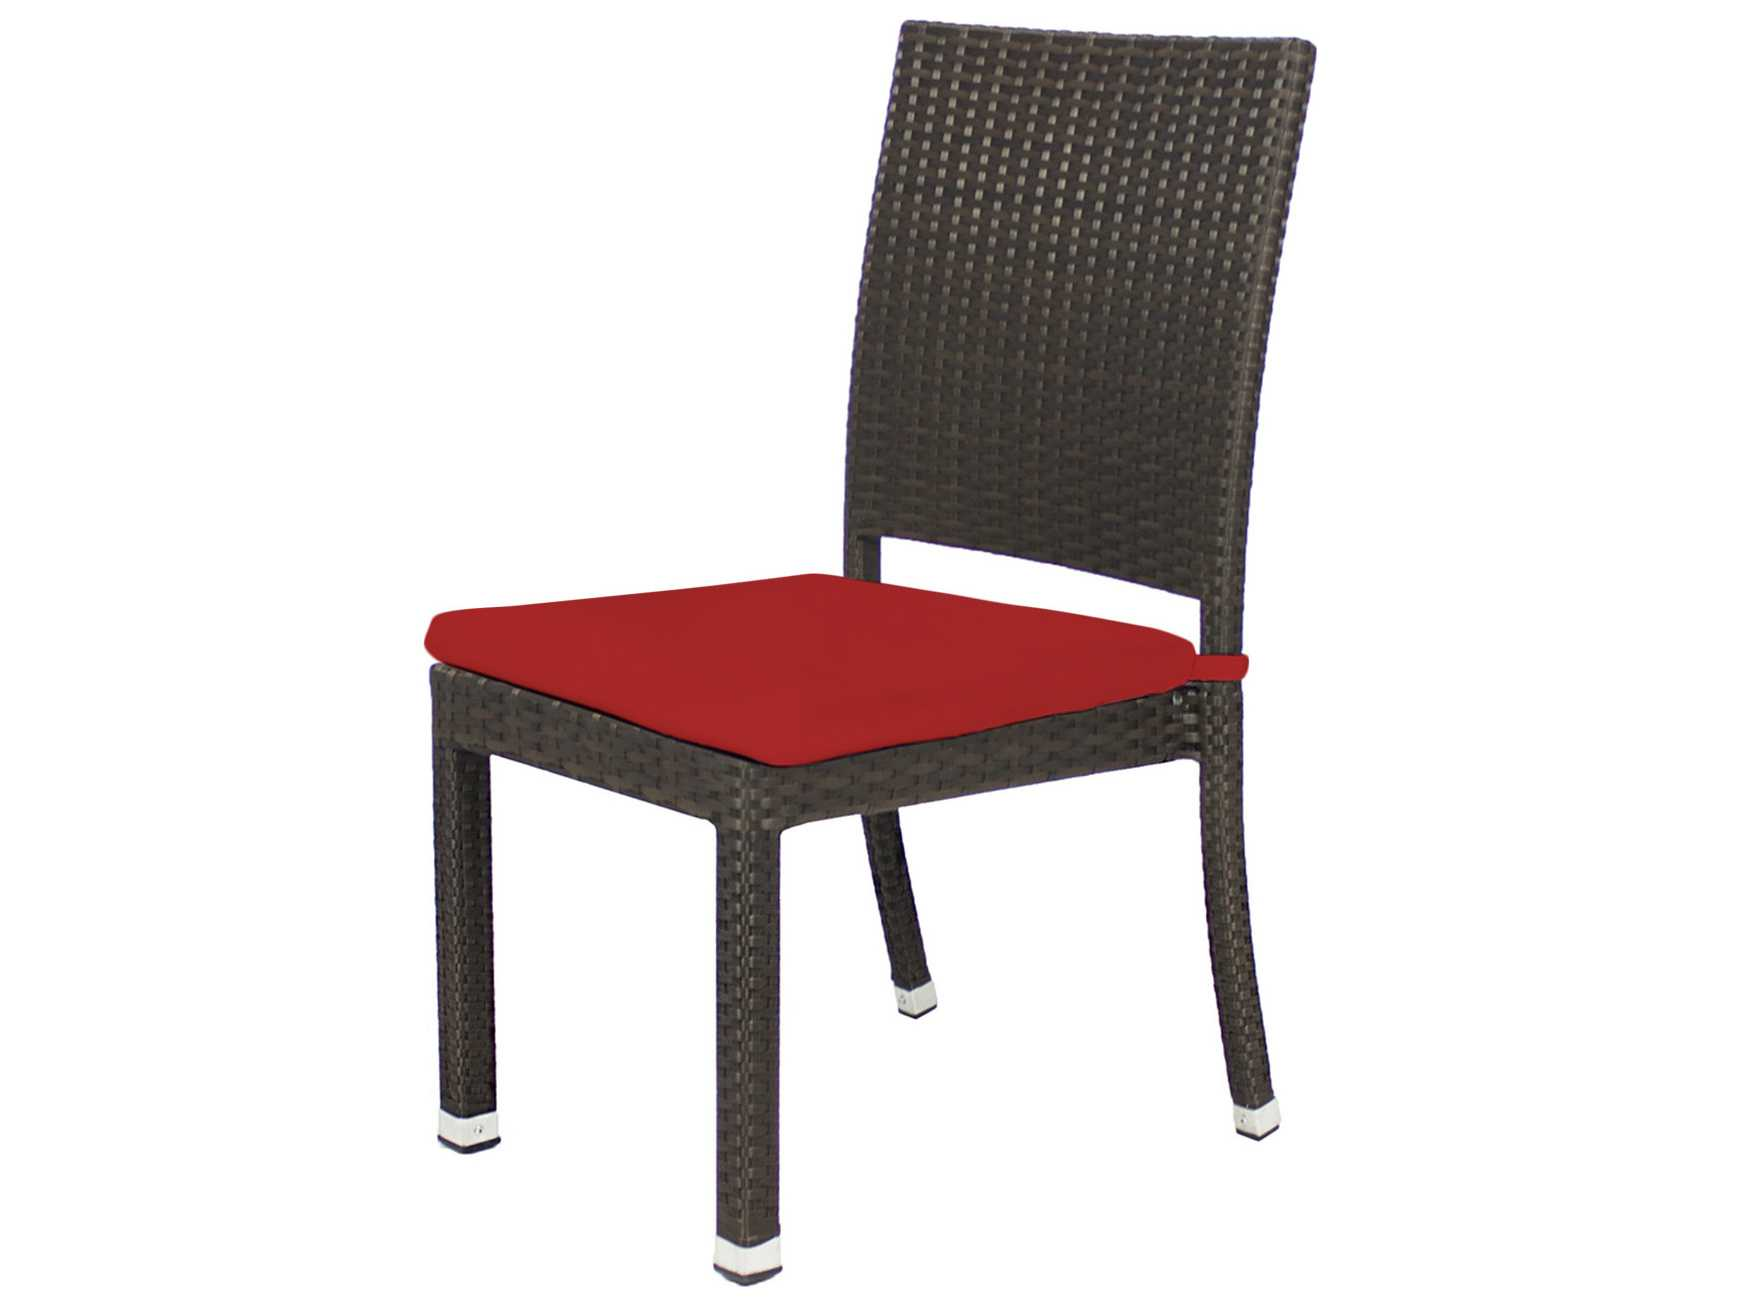 Source Outdoor Furniture Zen Wicker Dining Side Chair So 2002 162